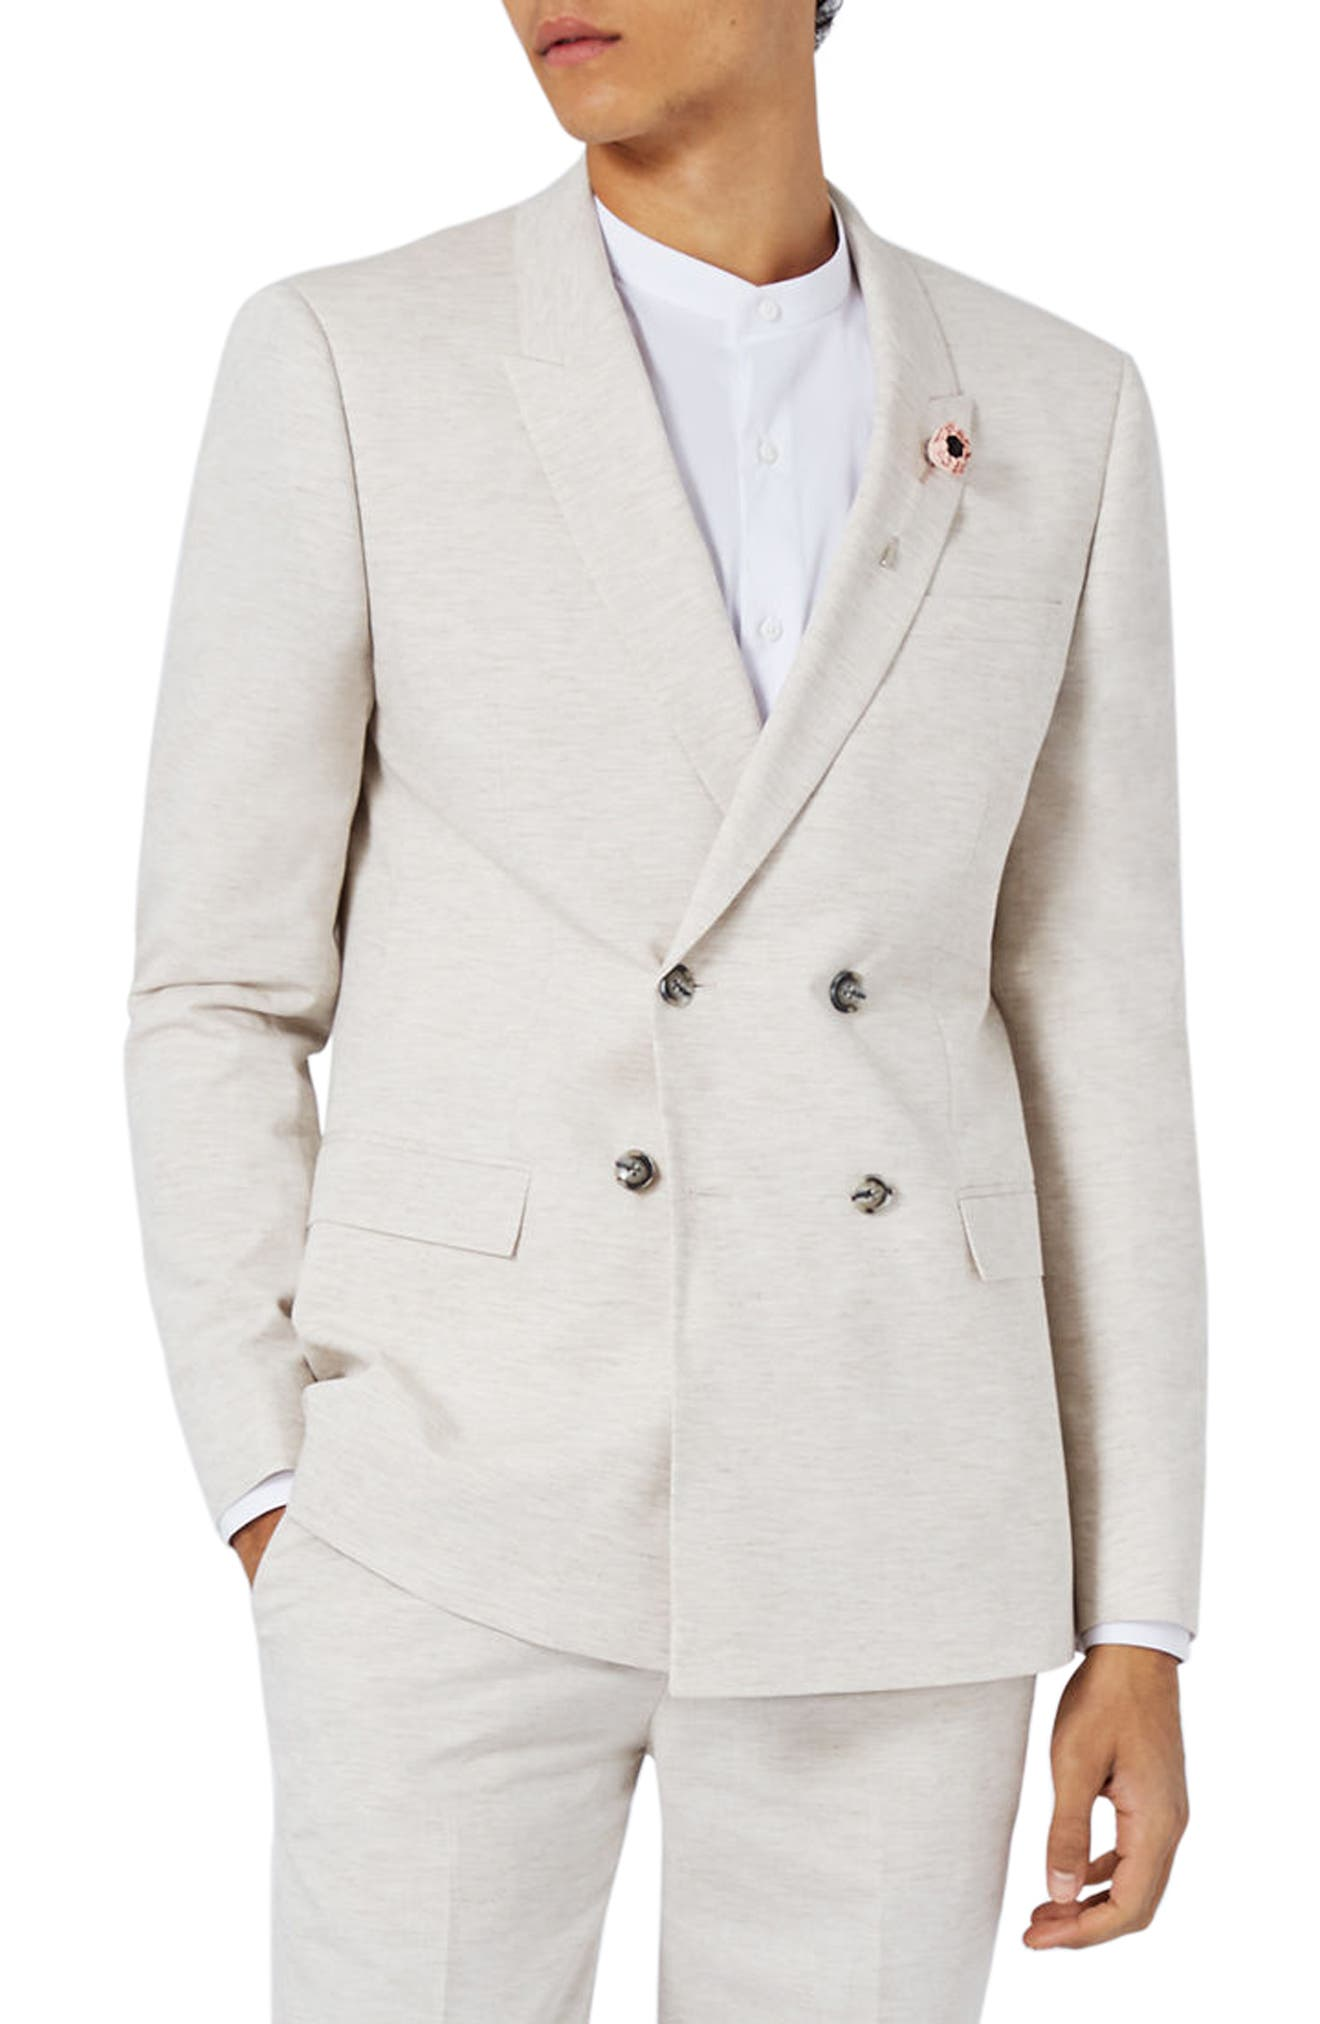 Alternate Image 1 Selected - Topman Skinny Fit Double Breasted Marled Suit Jacket